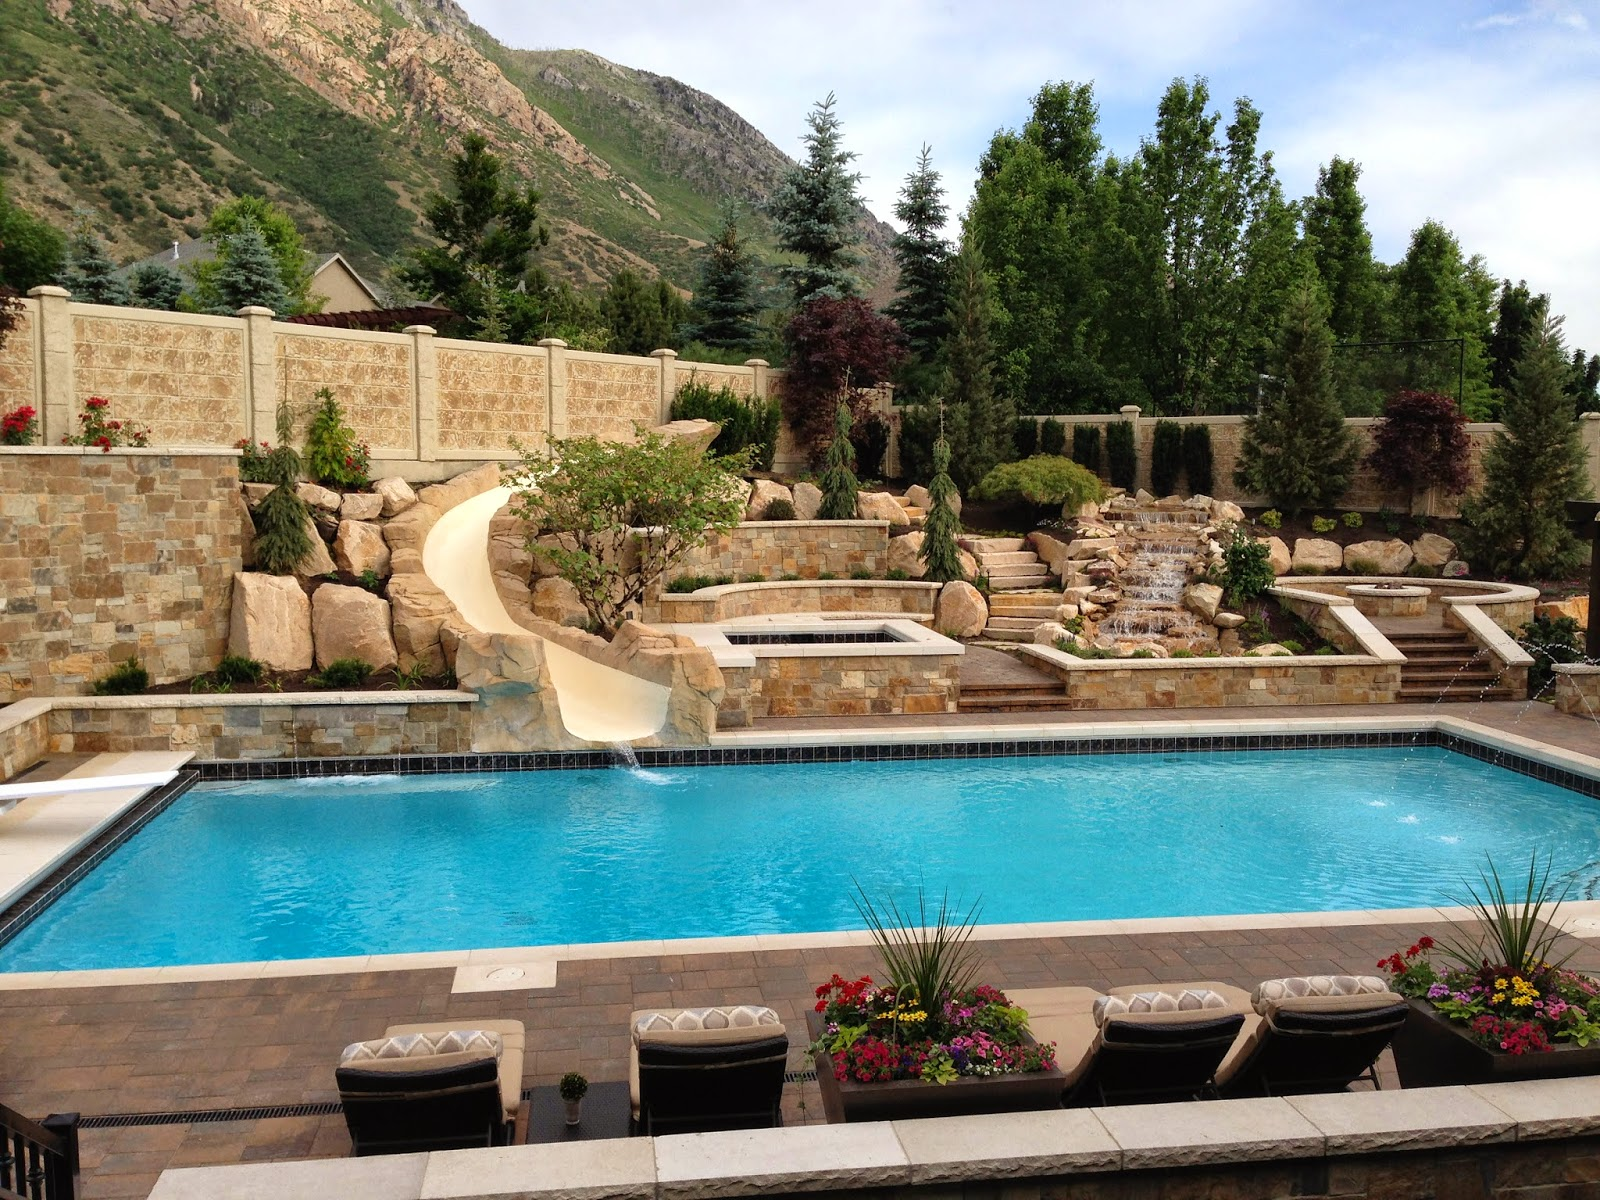 The Aqua House: Utah Valley Parade Of Homes Round Up: What